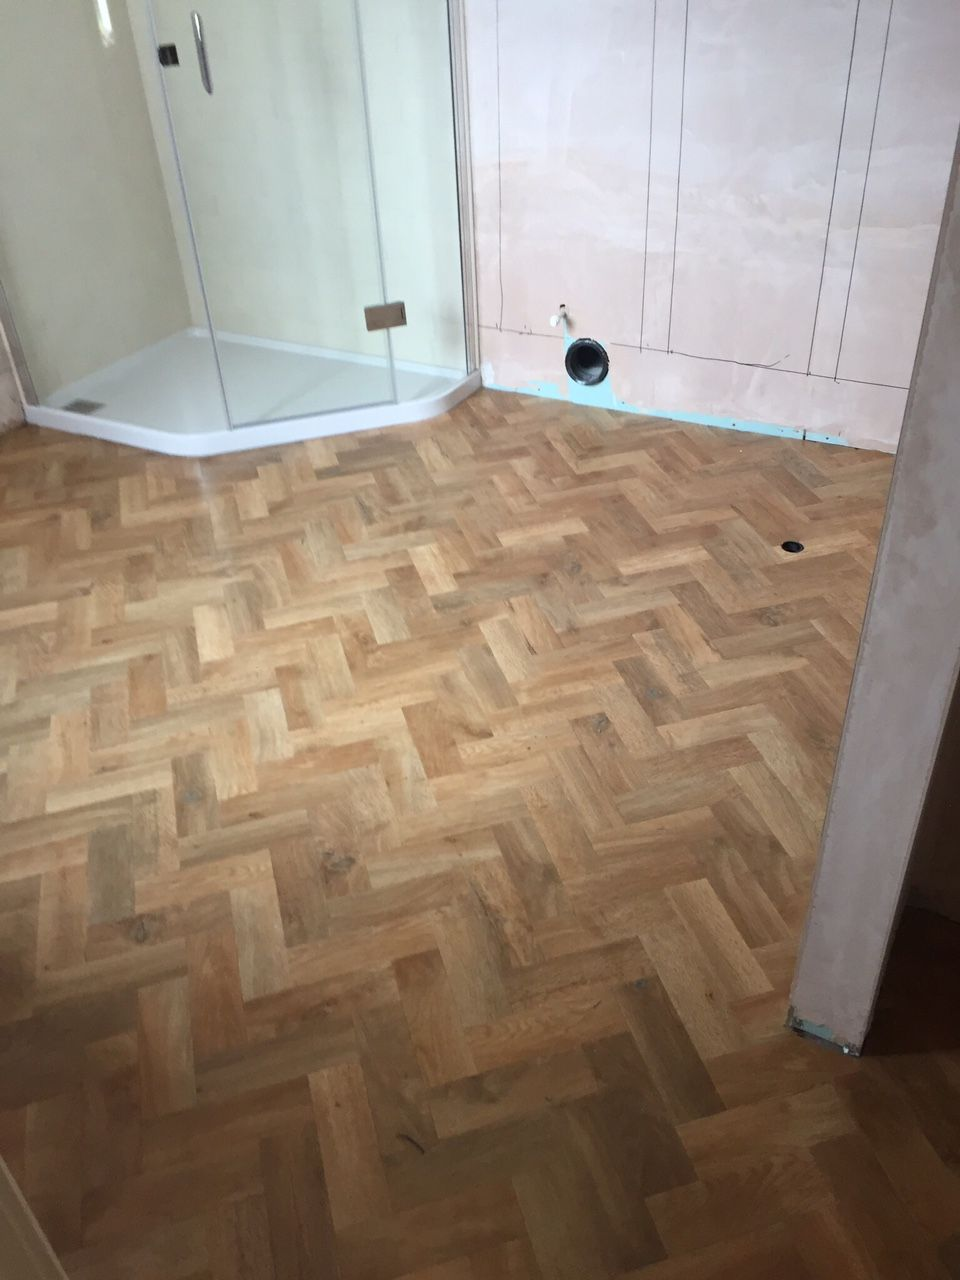 Karndean art select blonde oak parquet flooring fitted by for Art select parquet